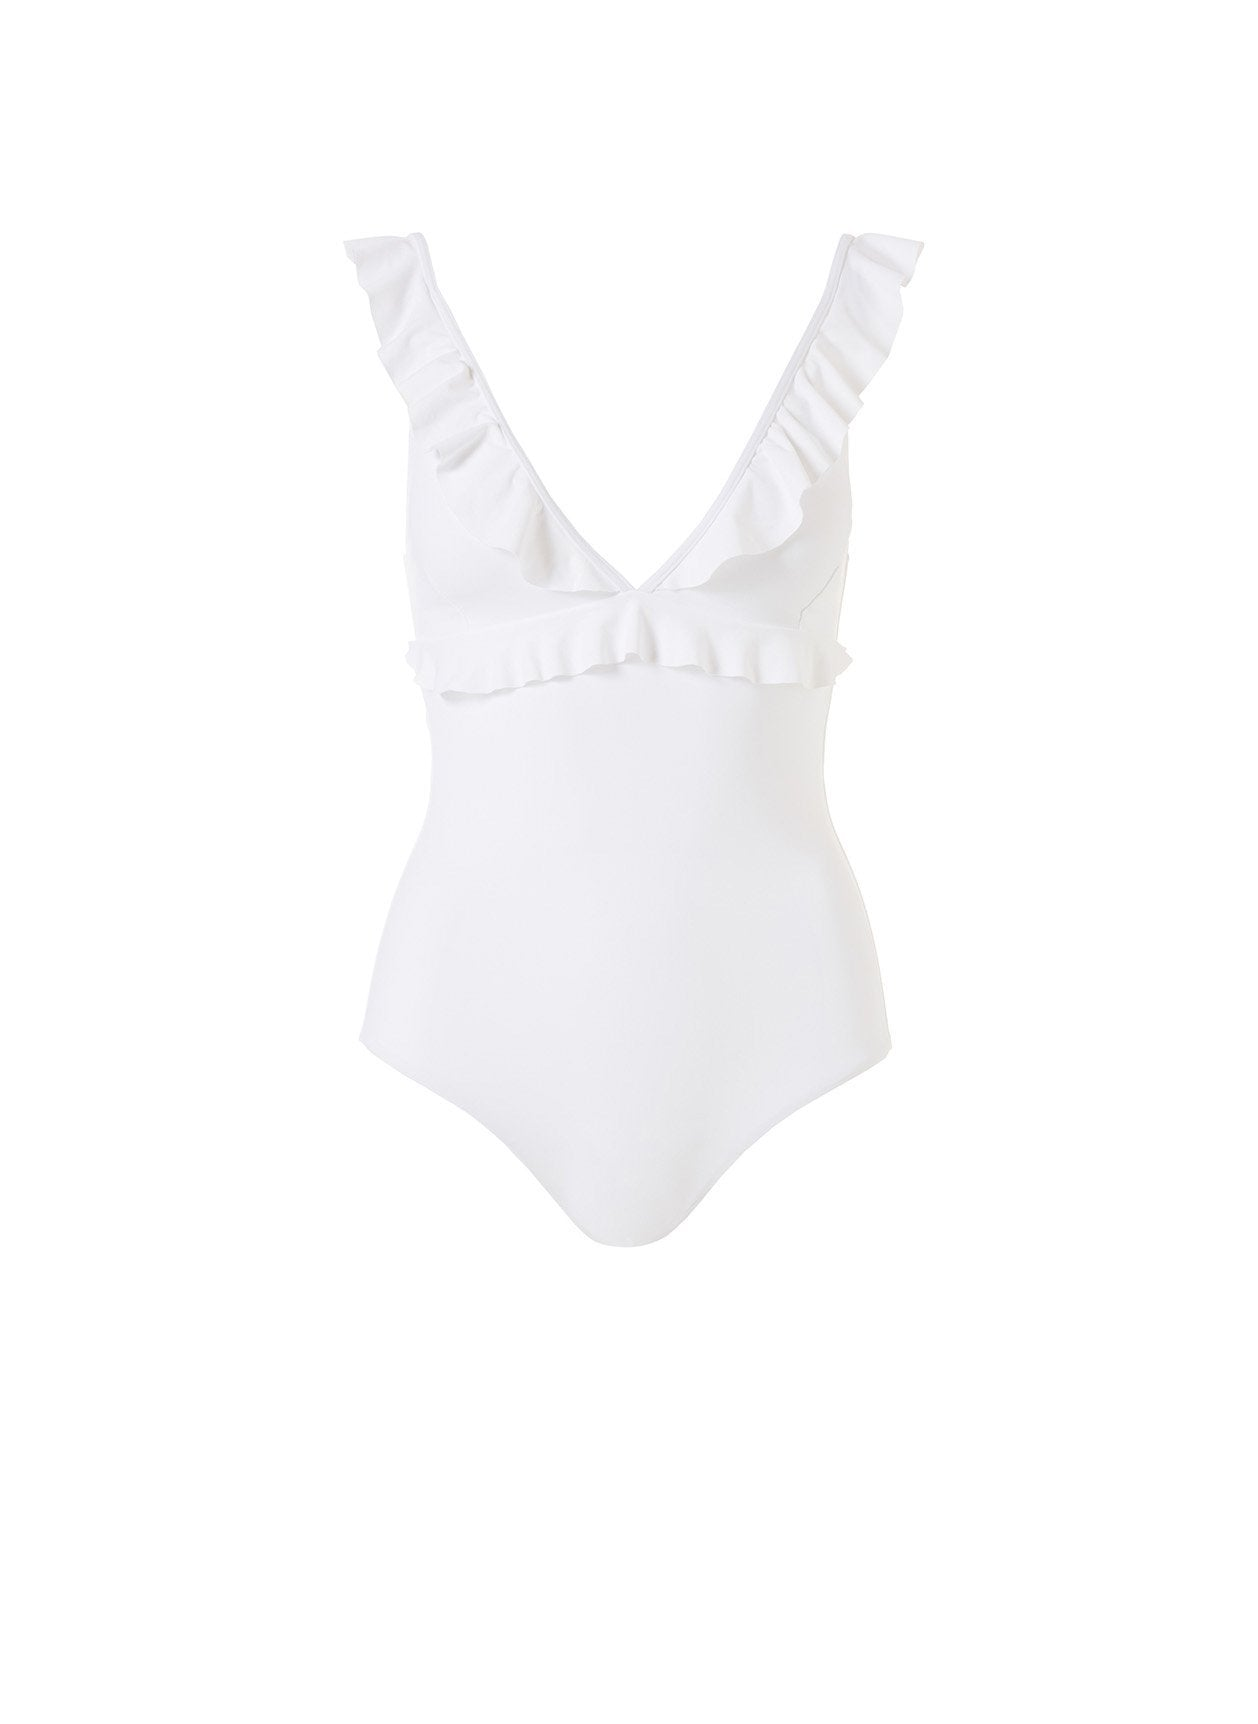 los angeles white onepiece